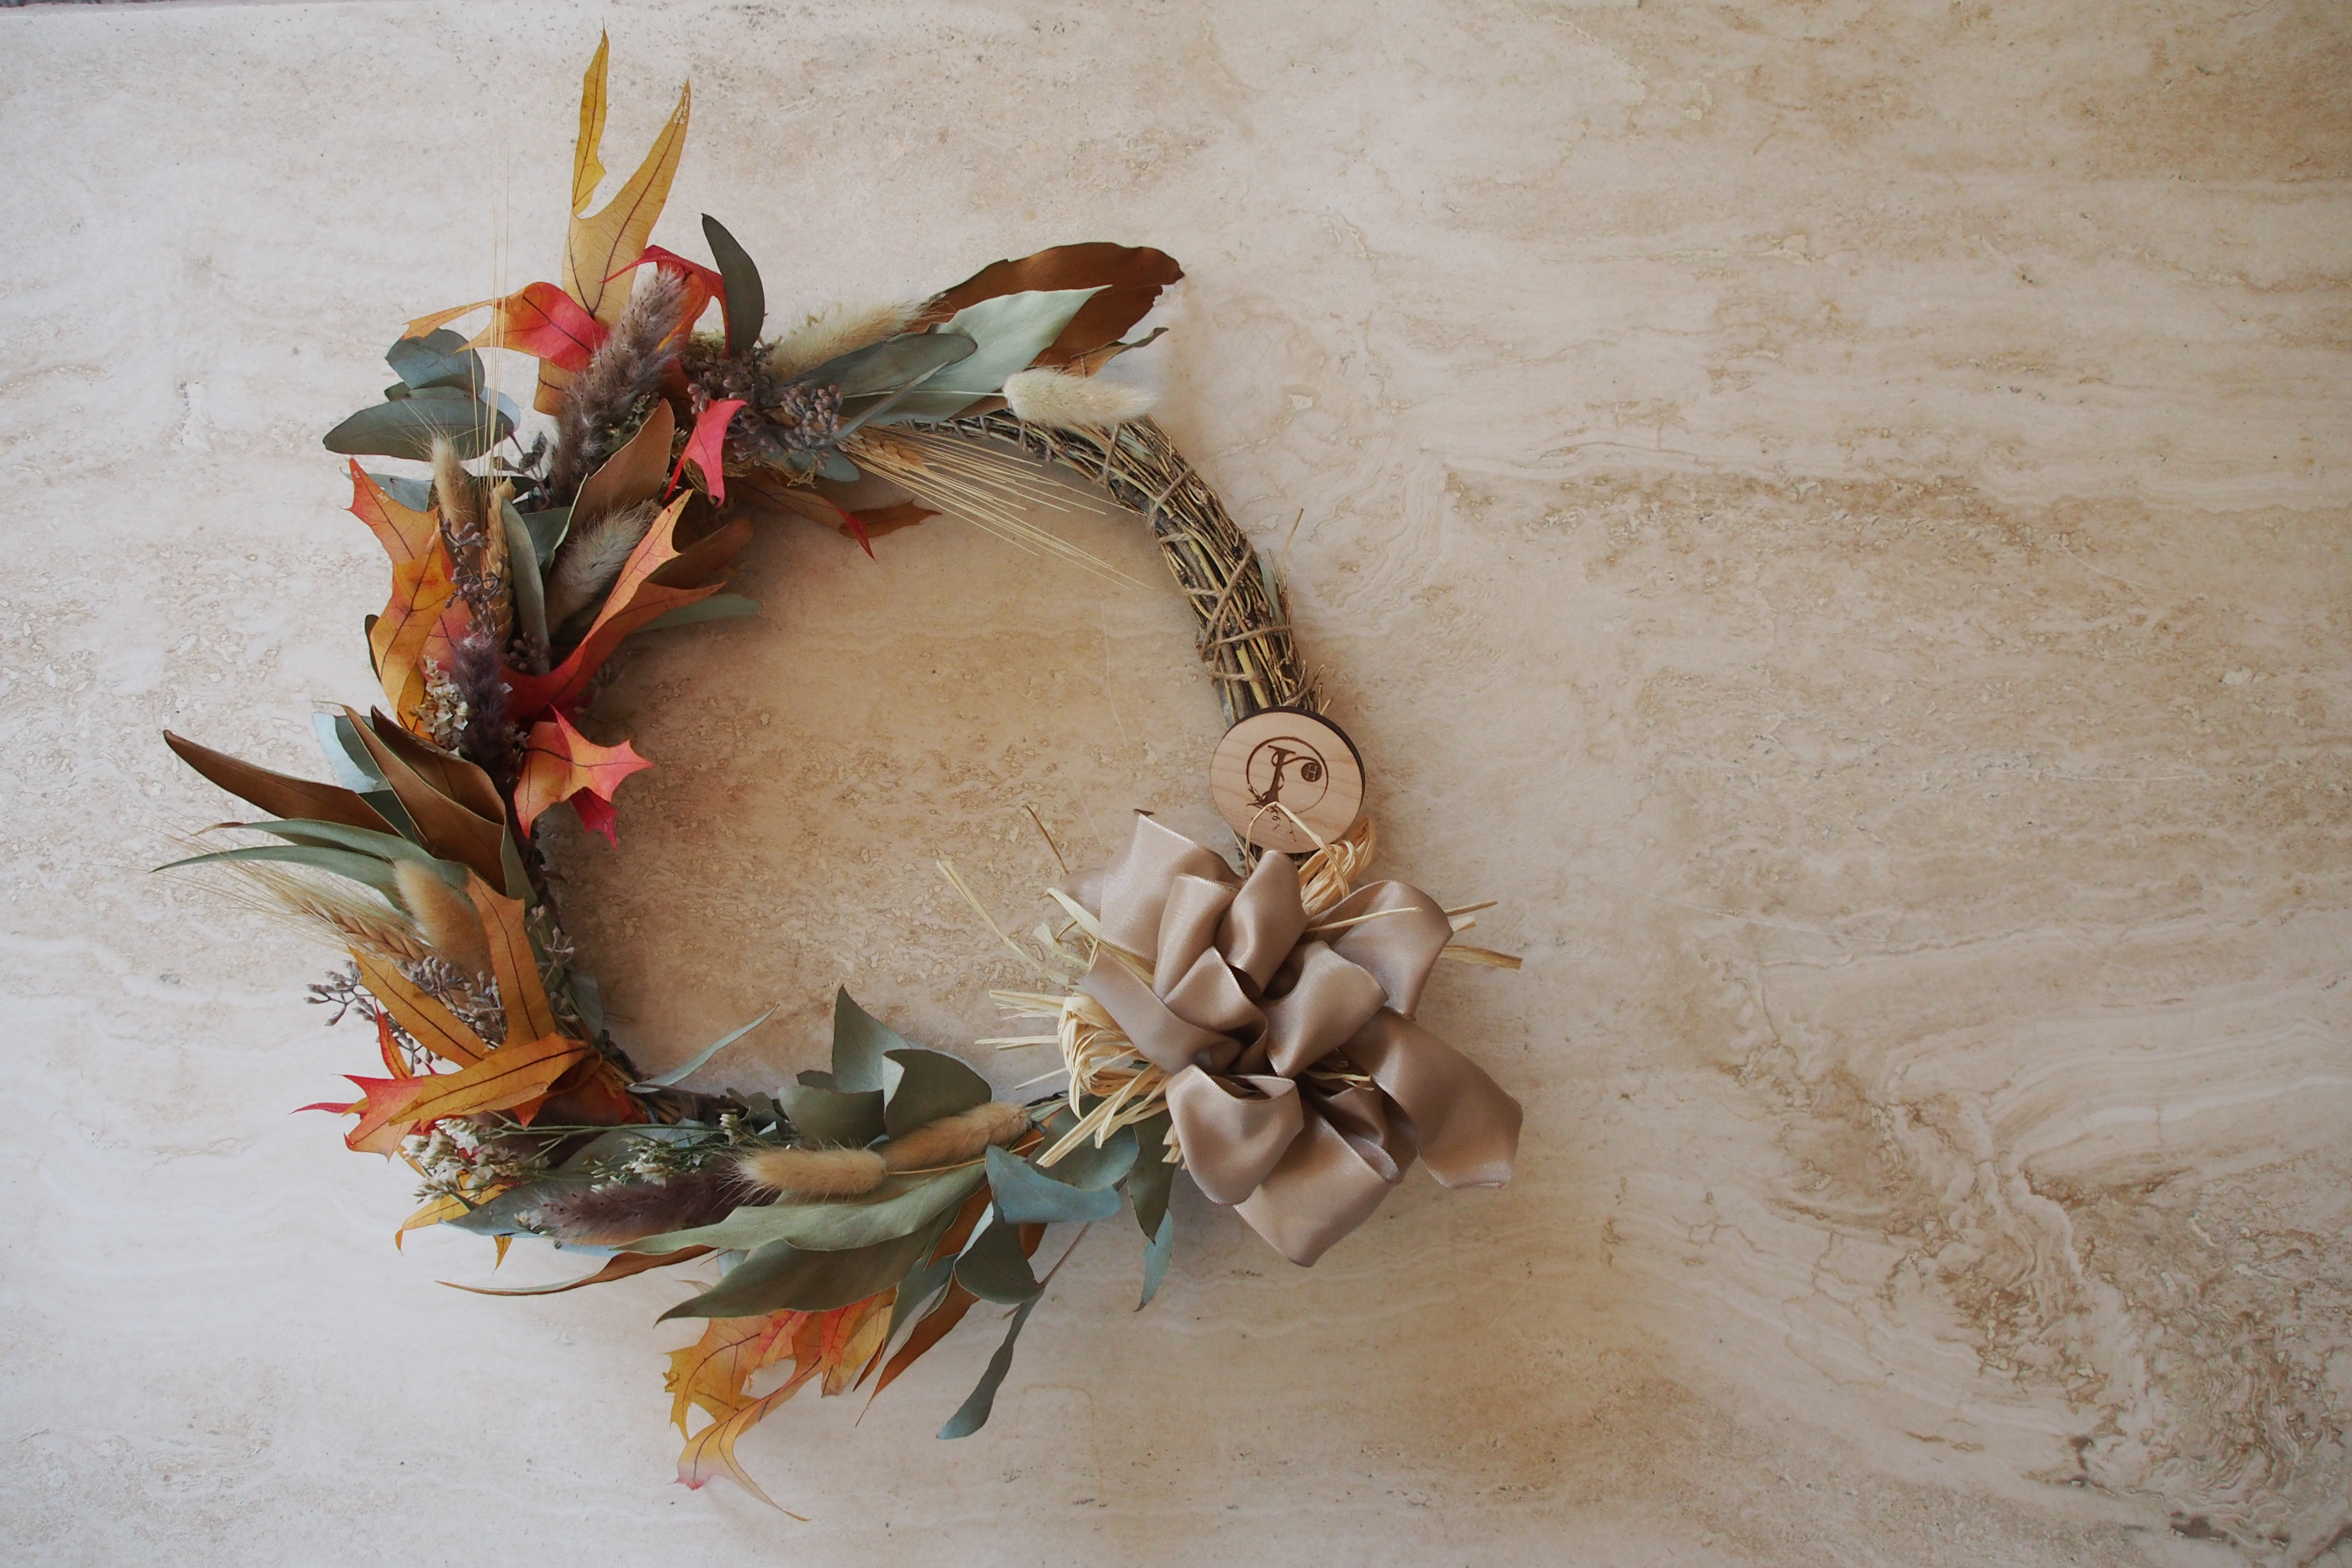 Floral Wreath laid out on a table